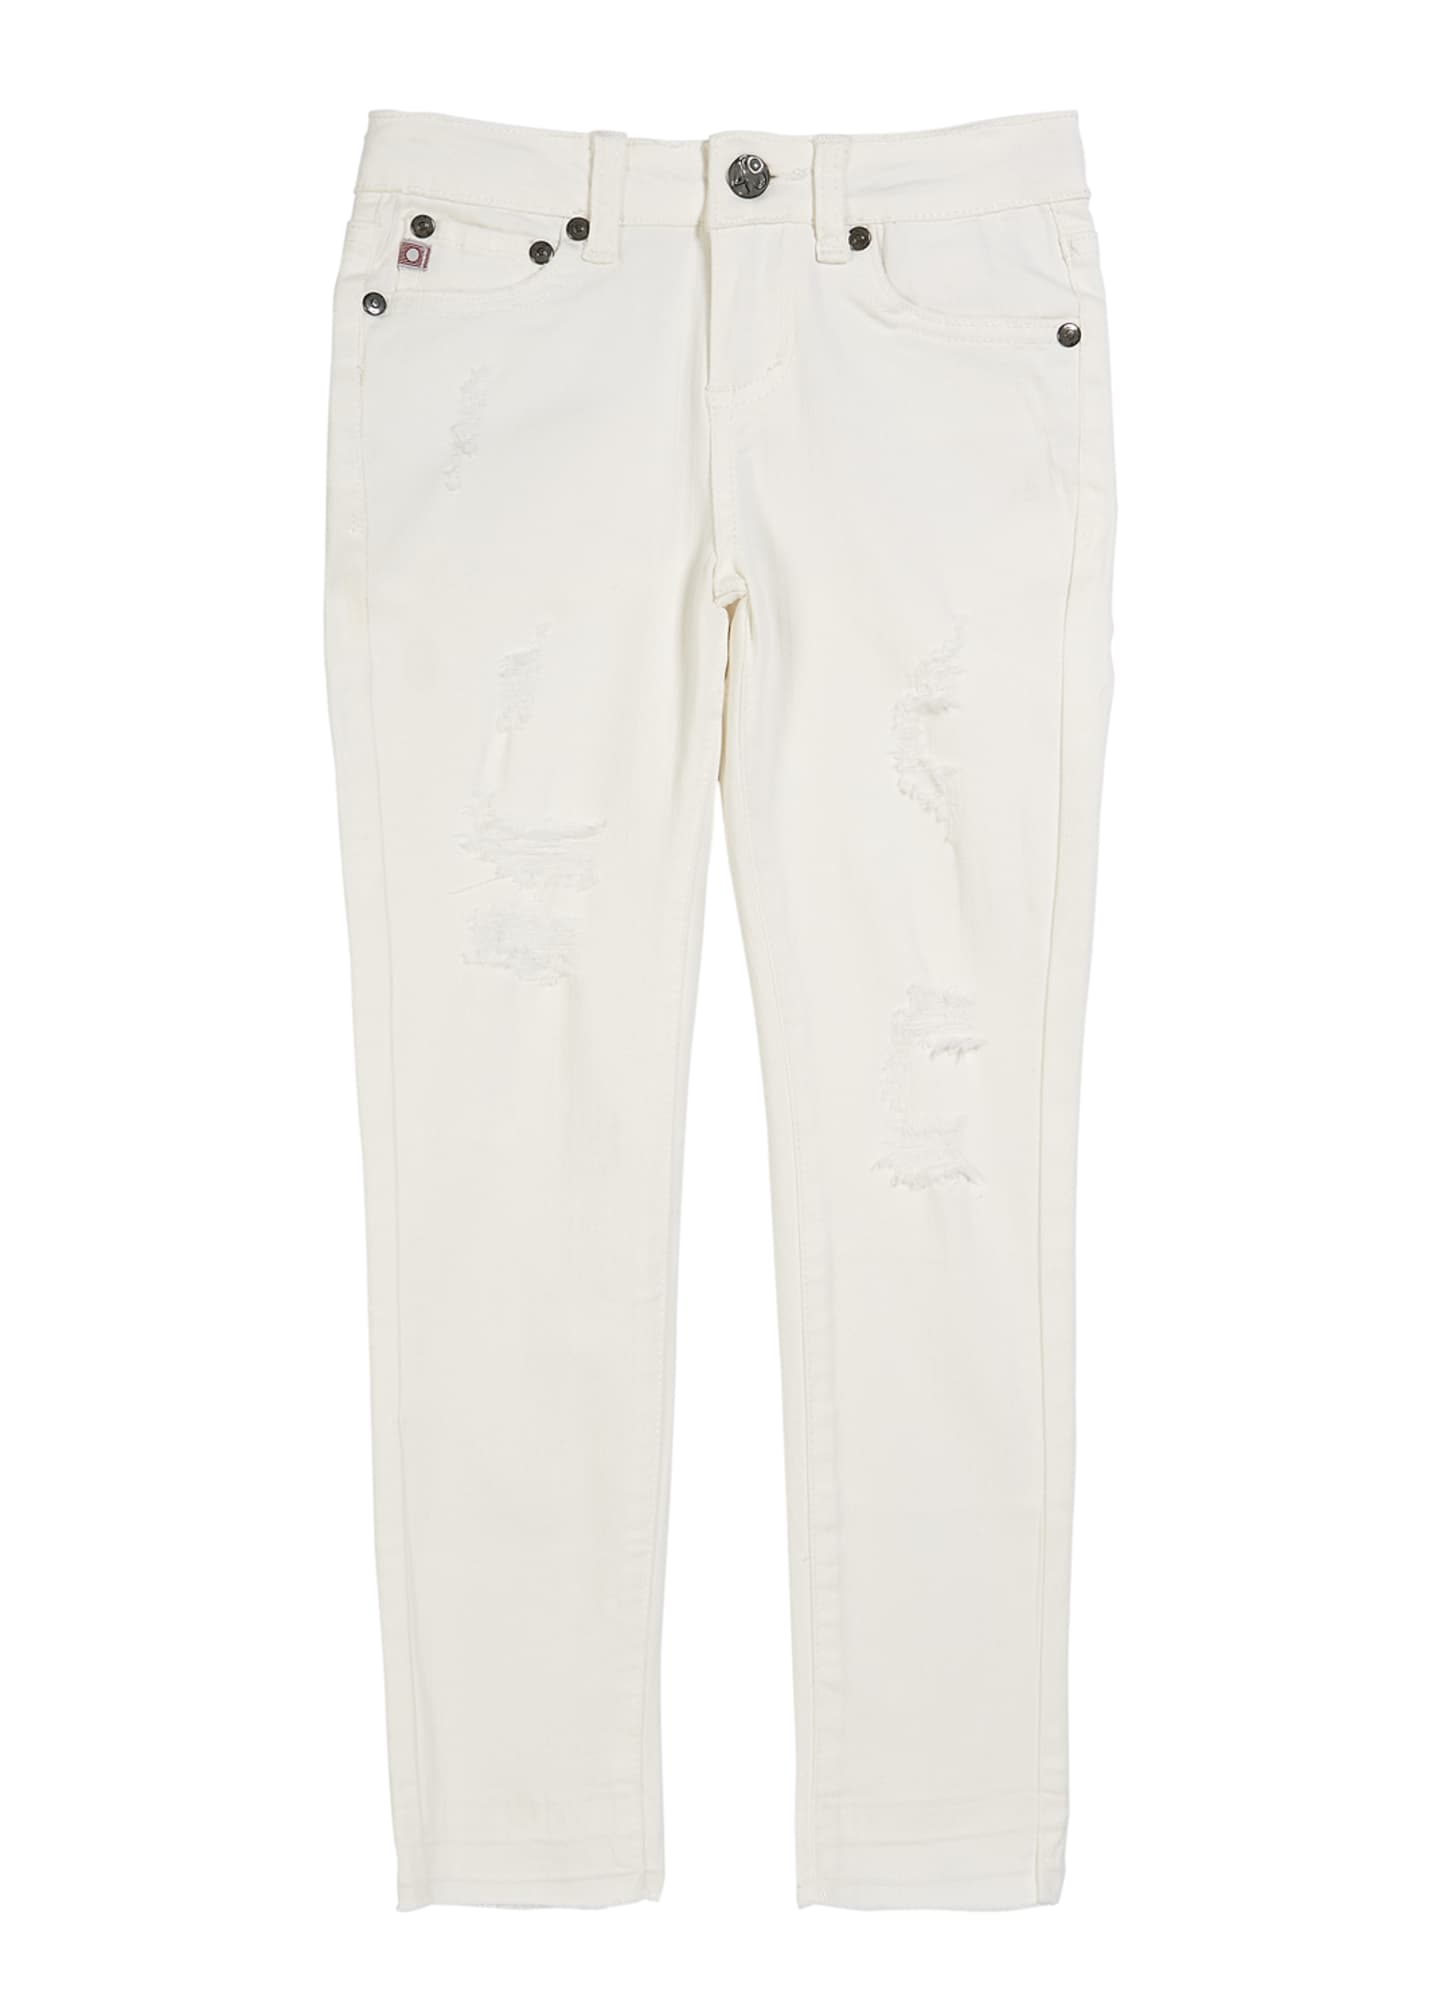 AG Girls' The Daily Distressed Skinny Jeans w/